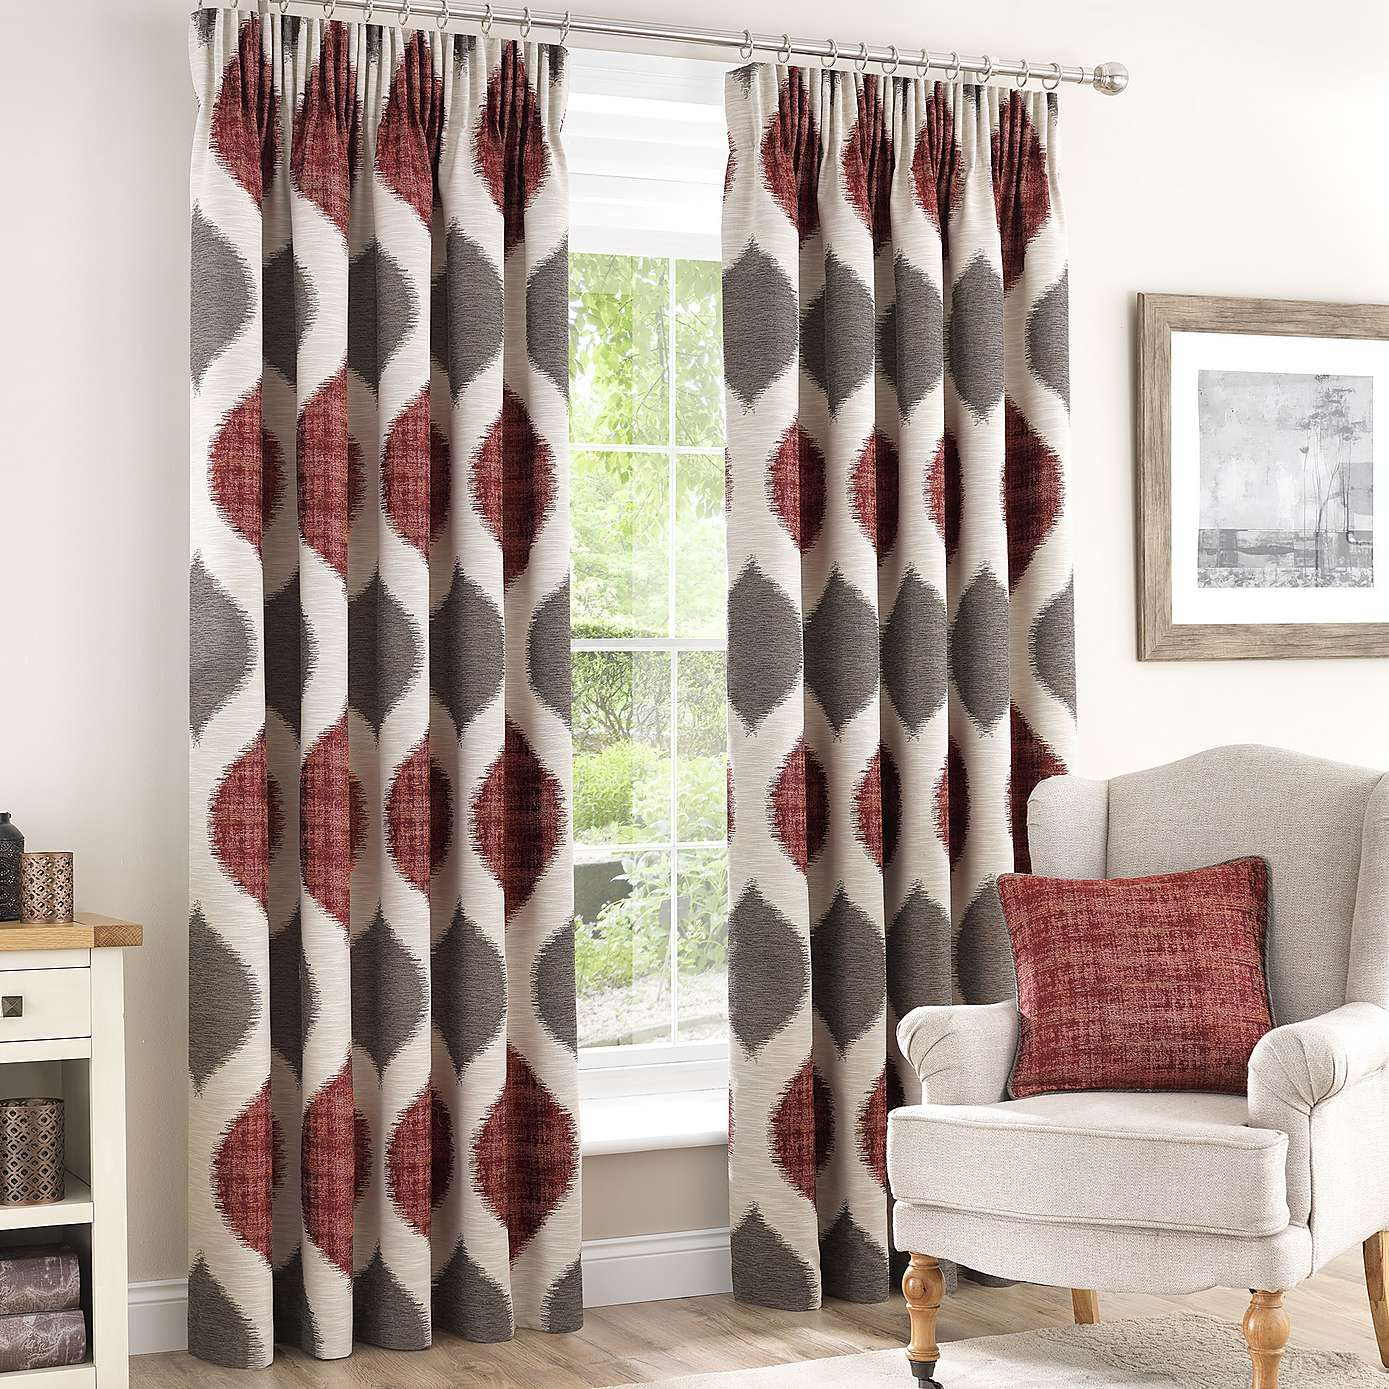 Red And Grey Curtains Dunelm: Morocco Red Pencil Pleat Curtains